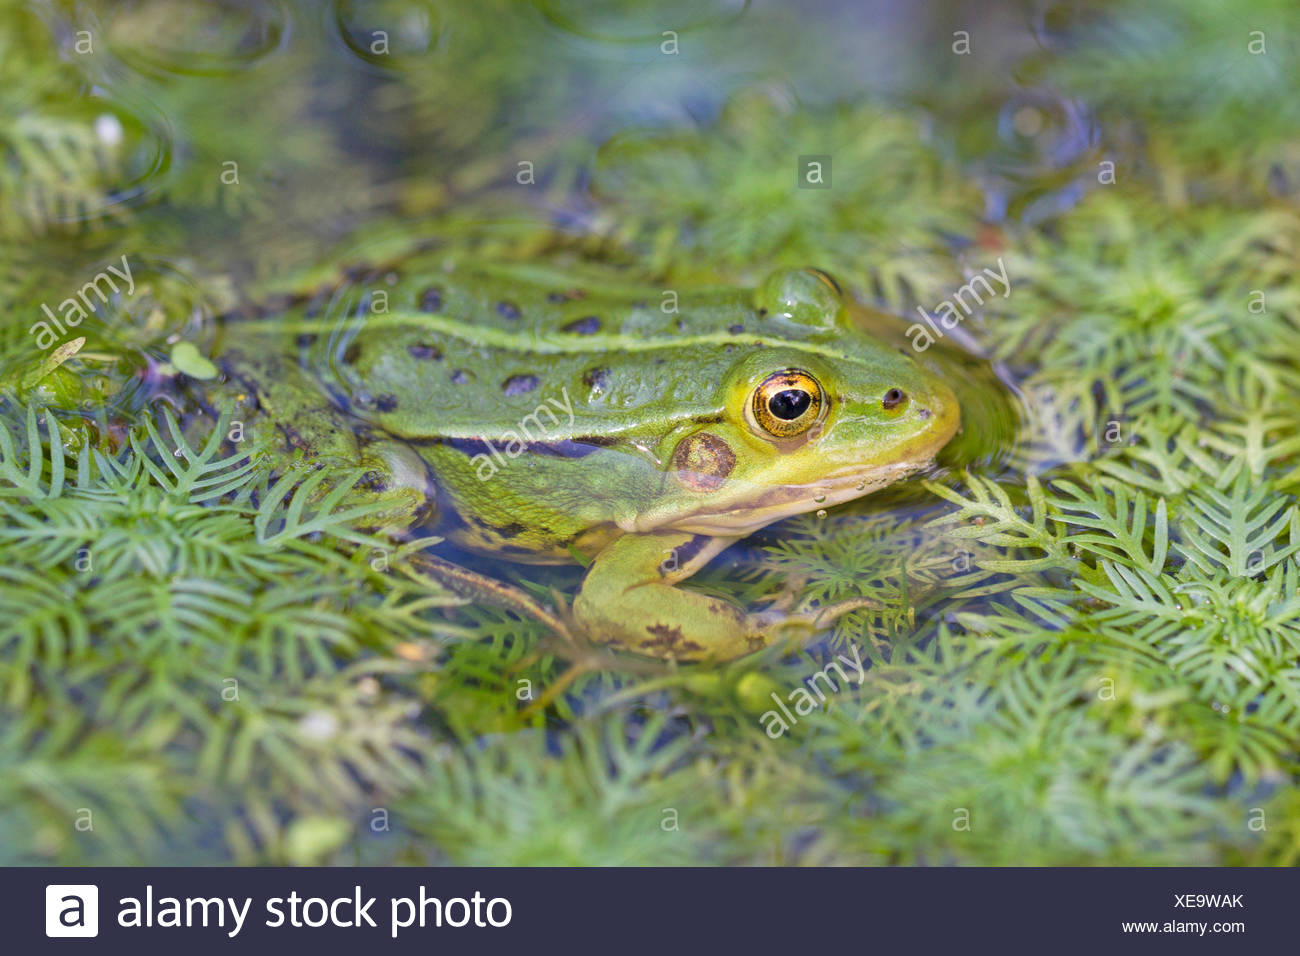 Pool frog in the water - Stock Image